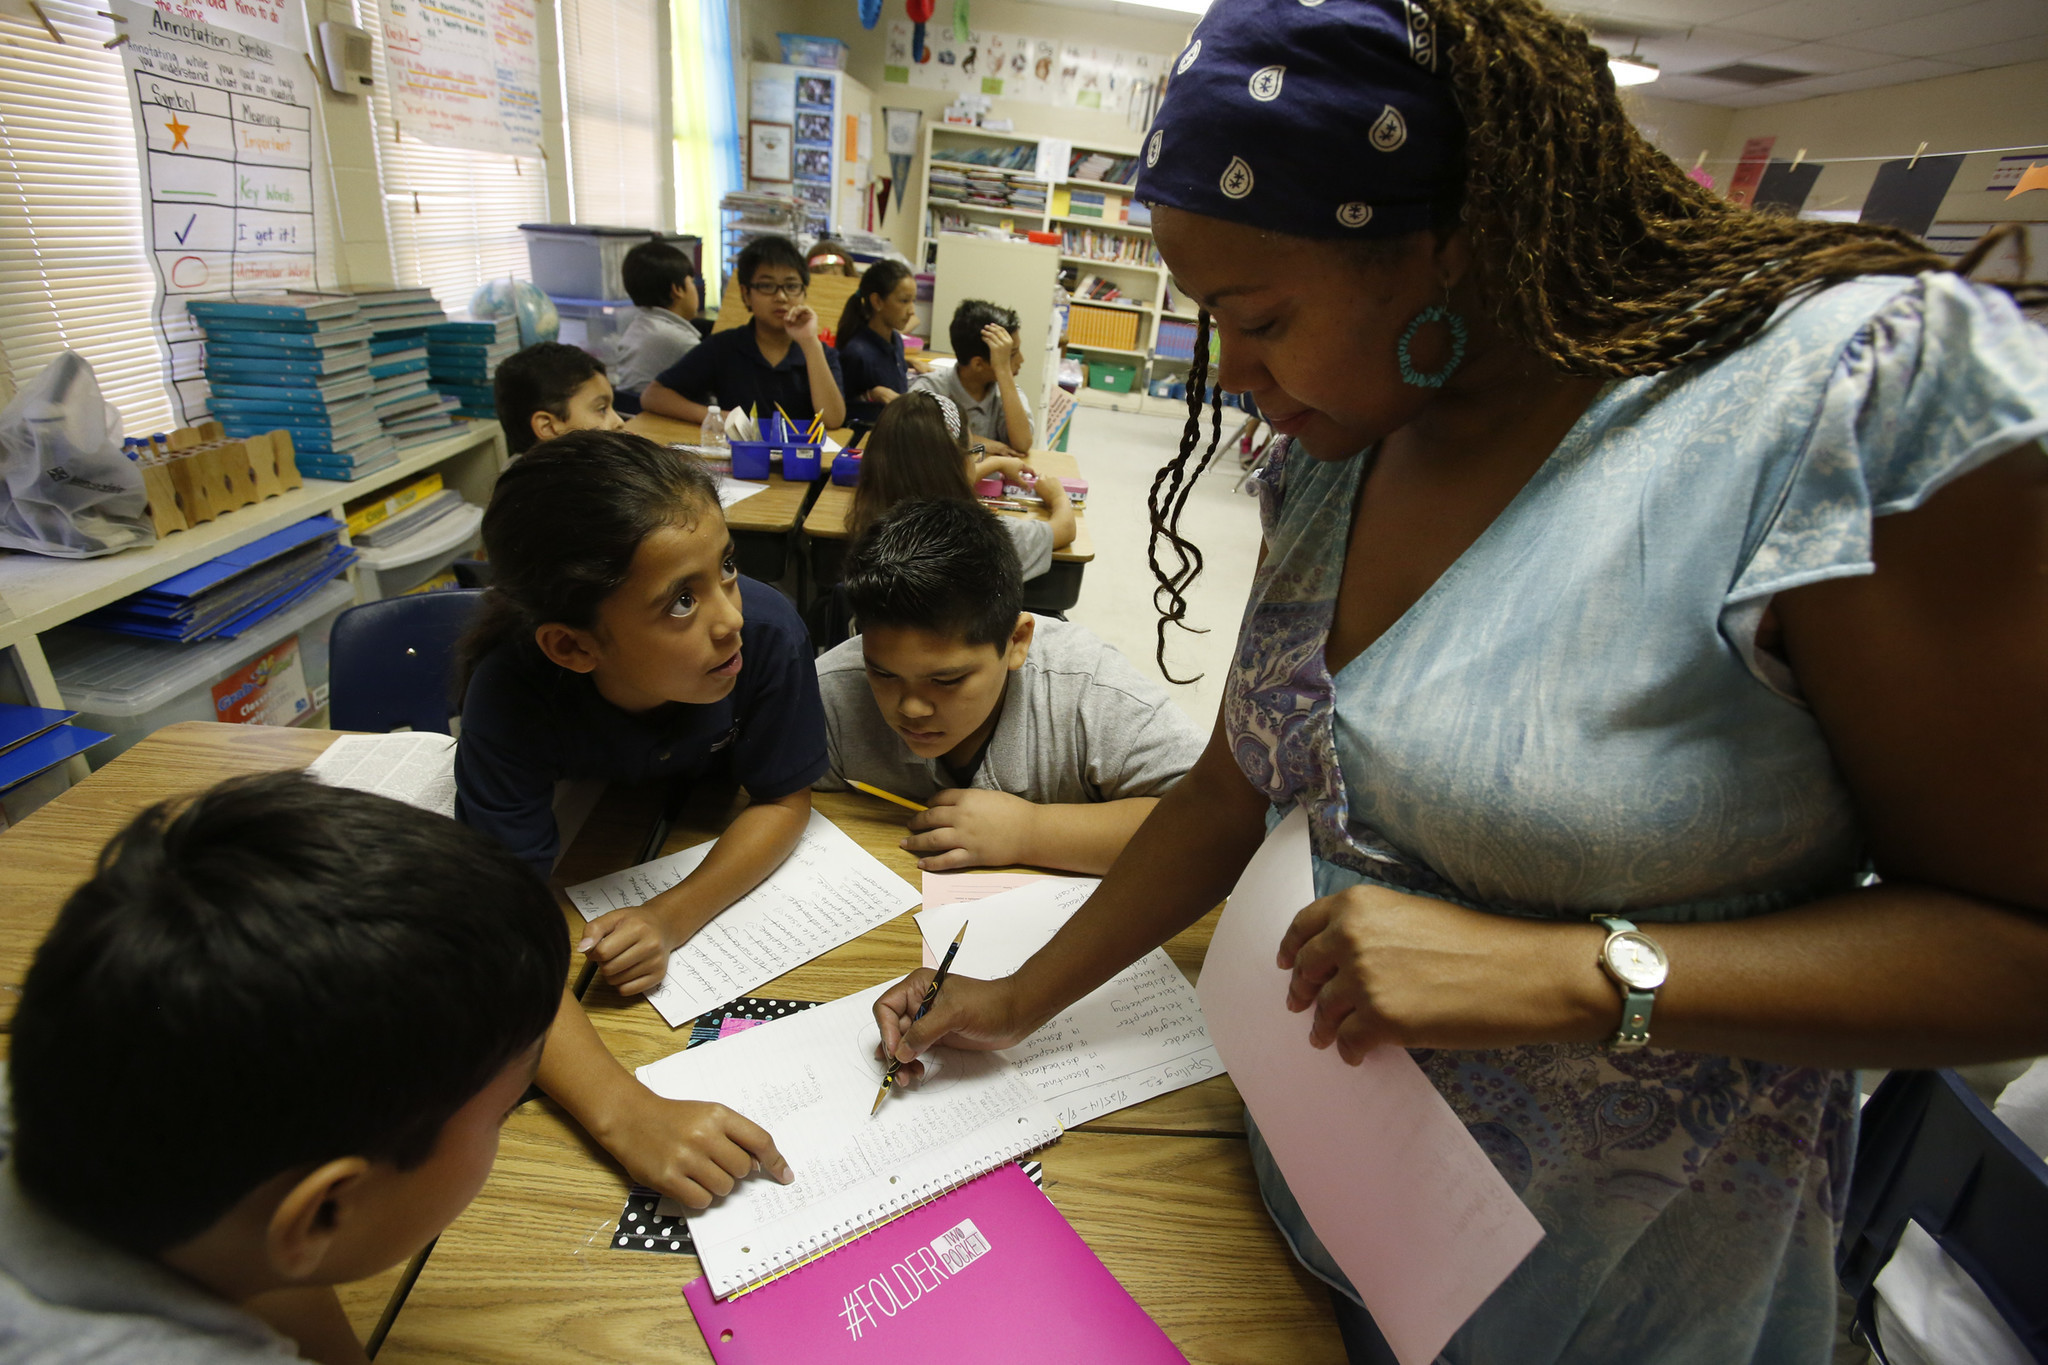 charter schools how charter schools can See the rankings for the top charter schools in america at us news learn more about our ranking methodology and the schools in the results here.